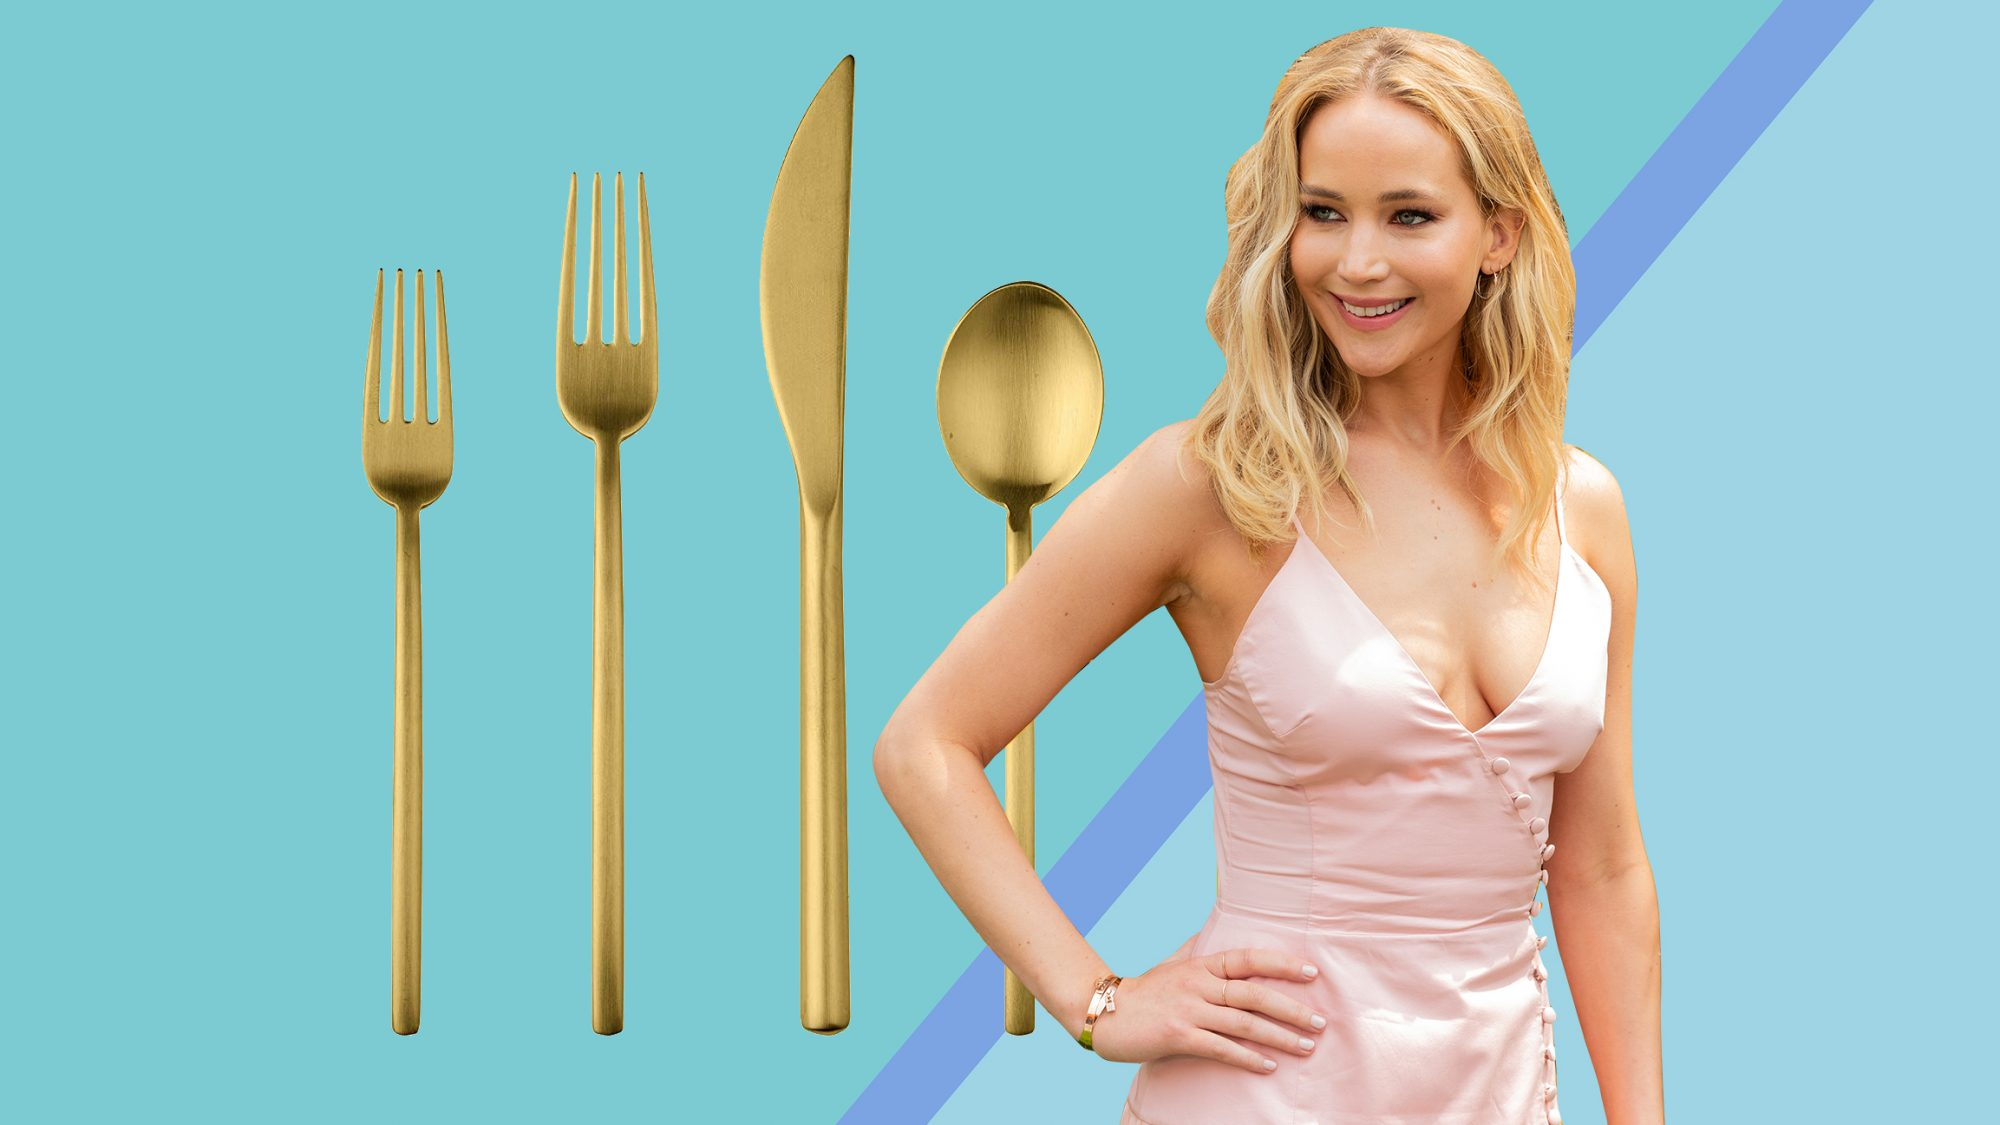 7 Chic Home Essentials to Shop From Jennifer Lawrence's Amazon Wedding Registry